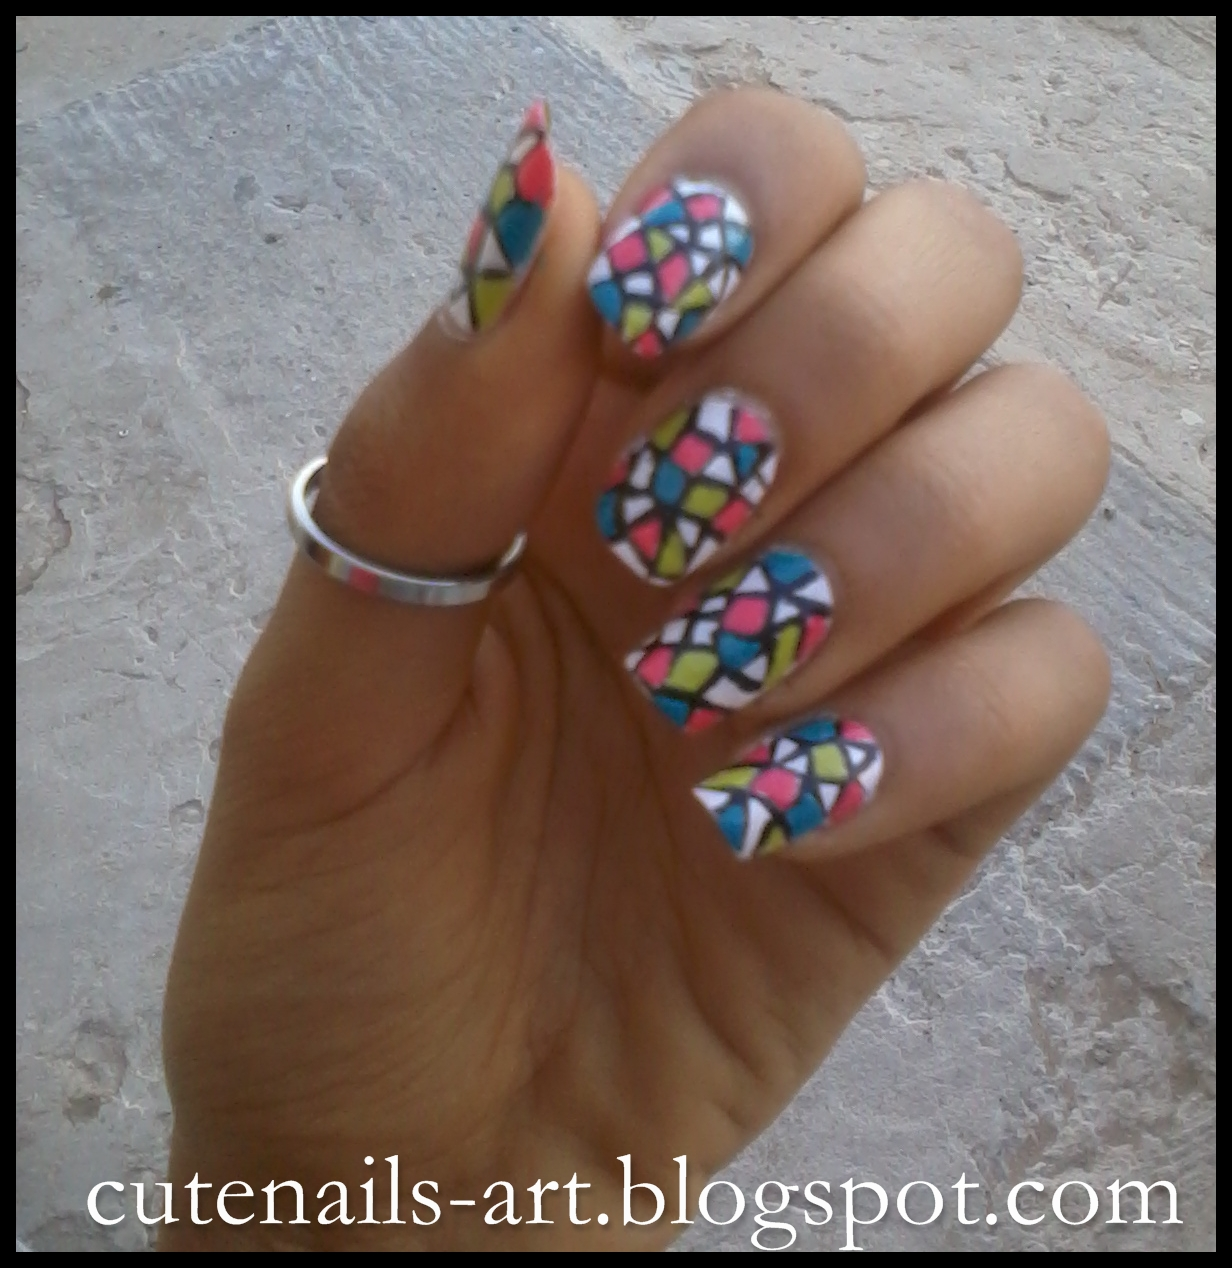 cutenails-art: Funny Nails :Stained Glass Nail Art